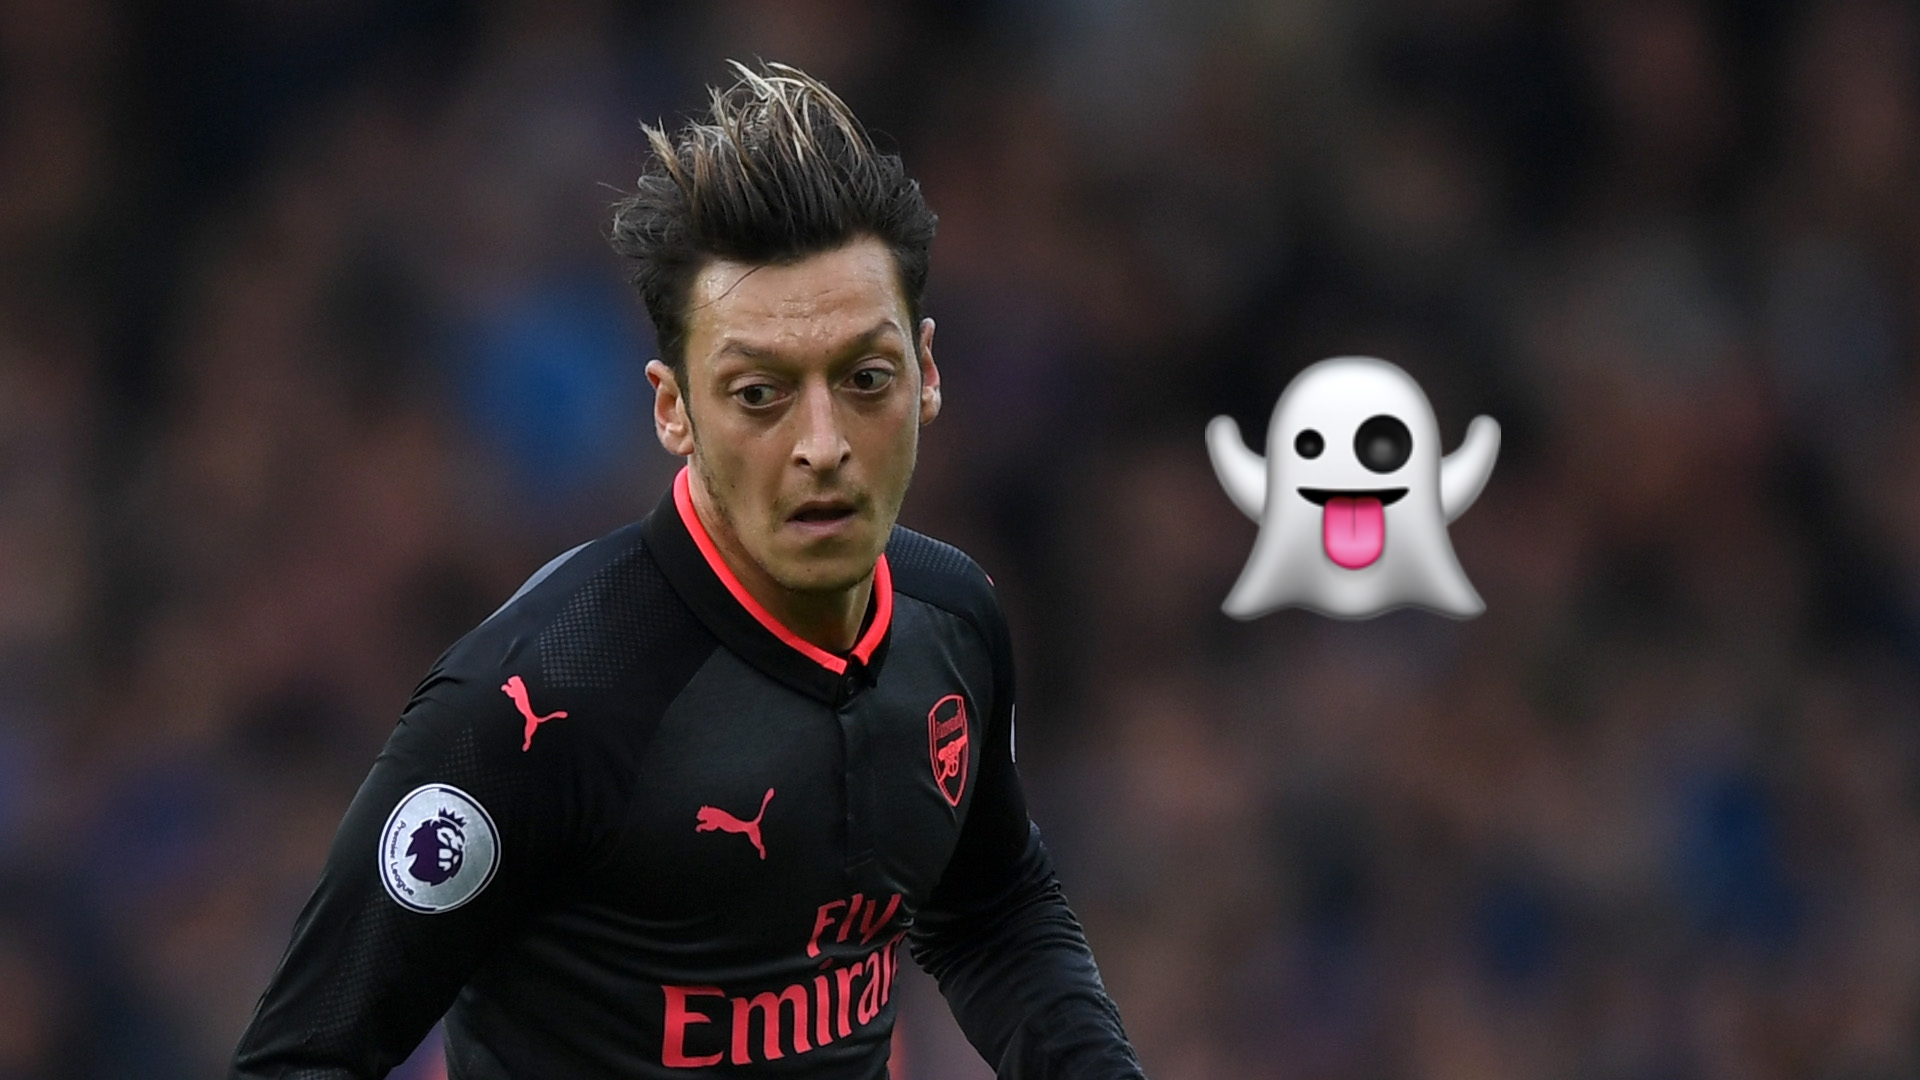 'He was just a ghost' - Petit hammers Ozil's performance vs Man City